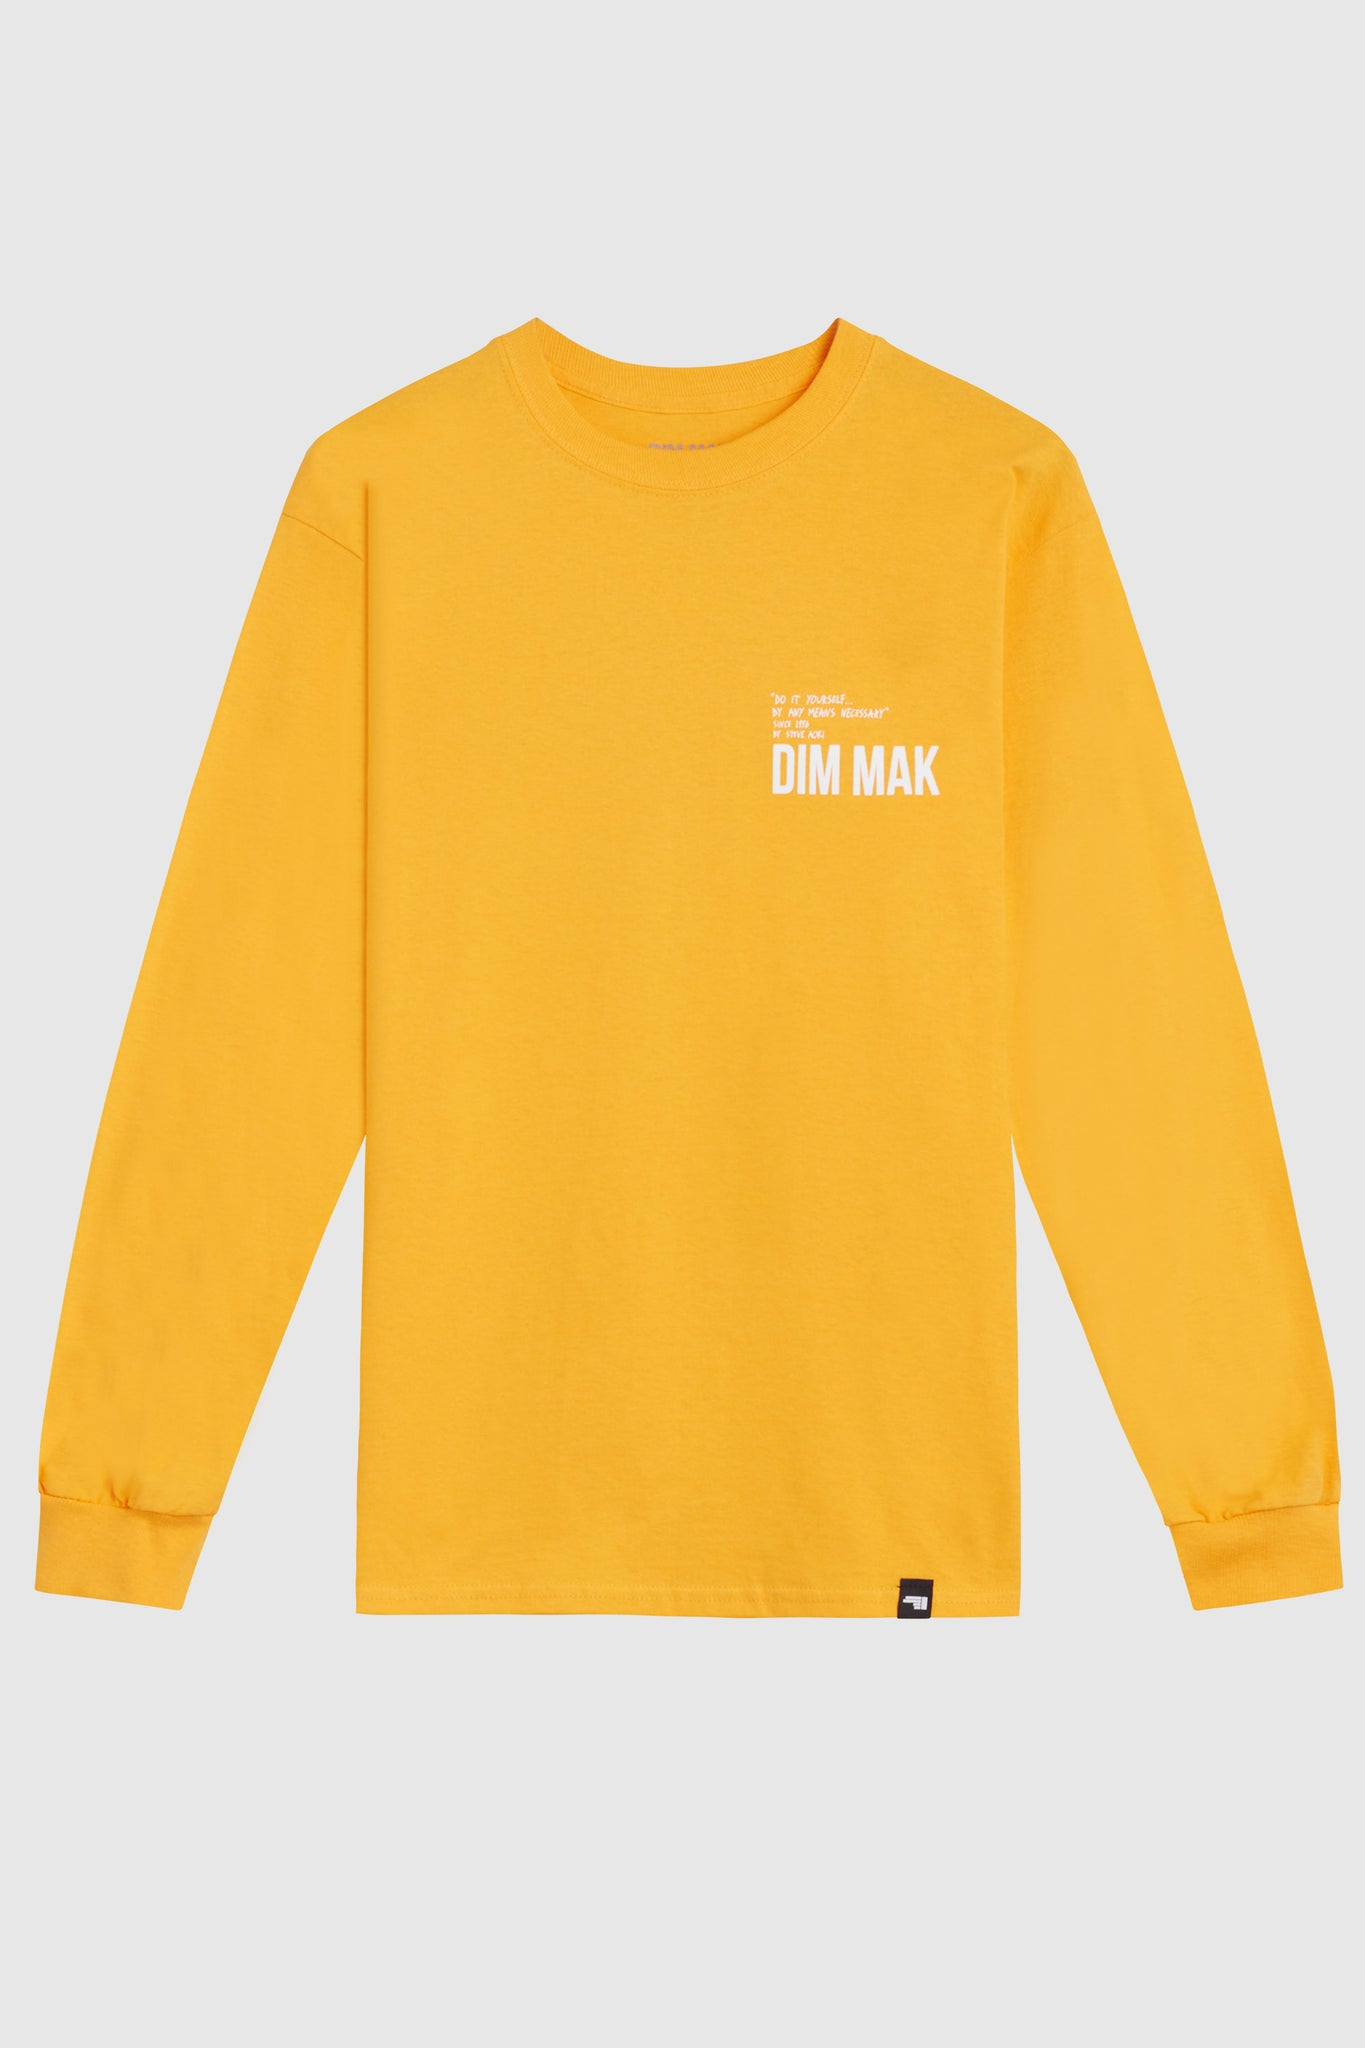 Dim Mak Essential 2.0 Long Sleeve Tee - Gold